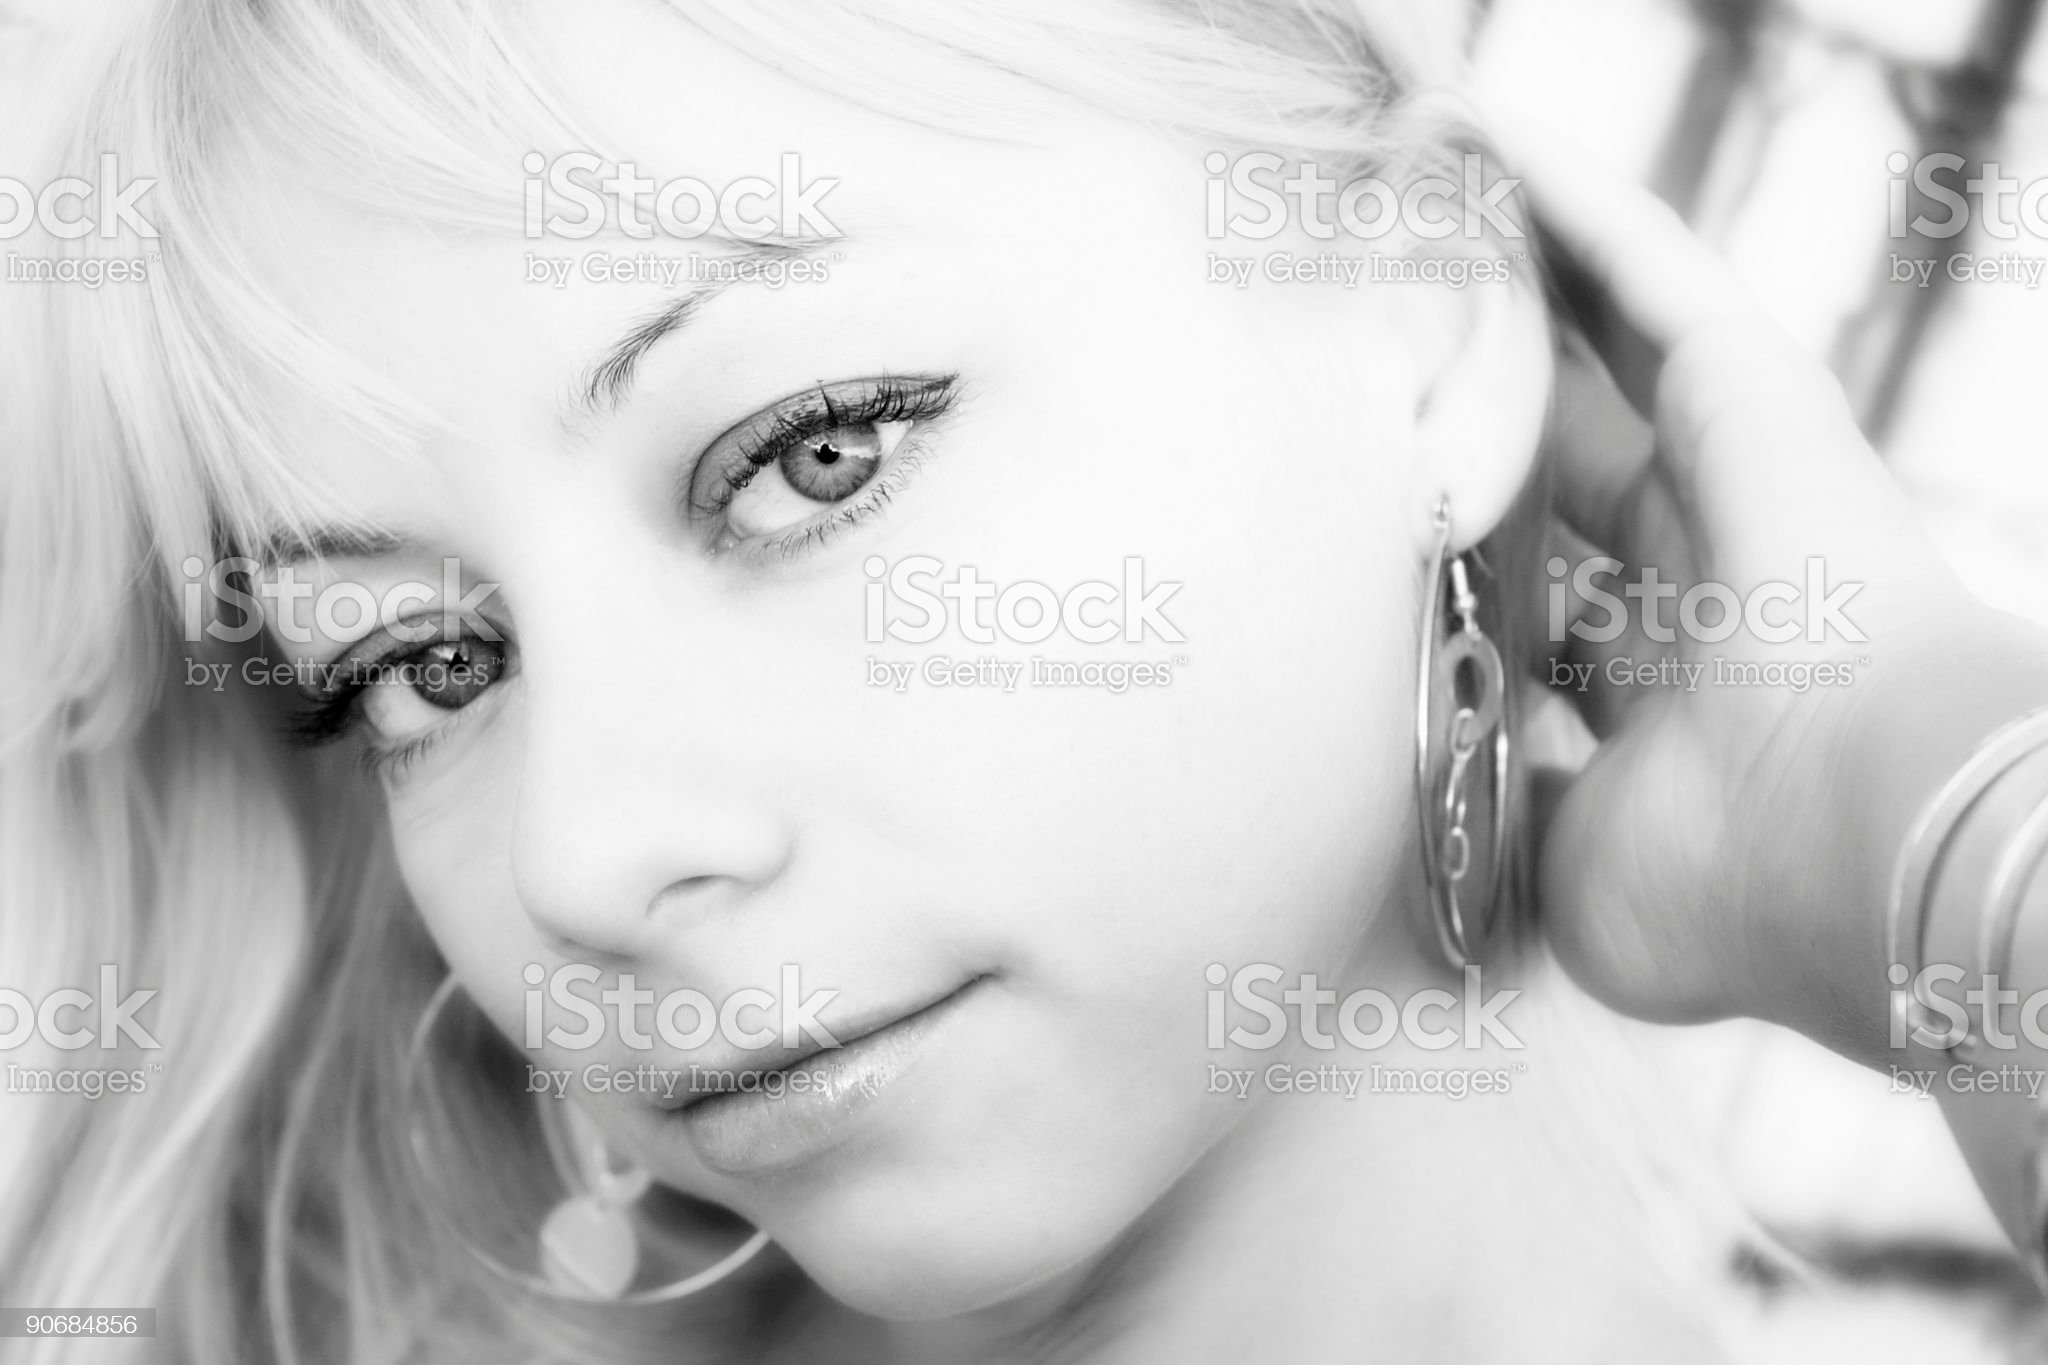 Beauty in Black and White royalty-free stock photo